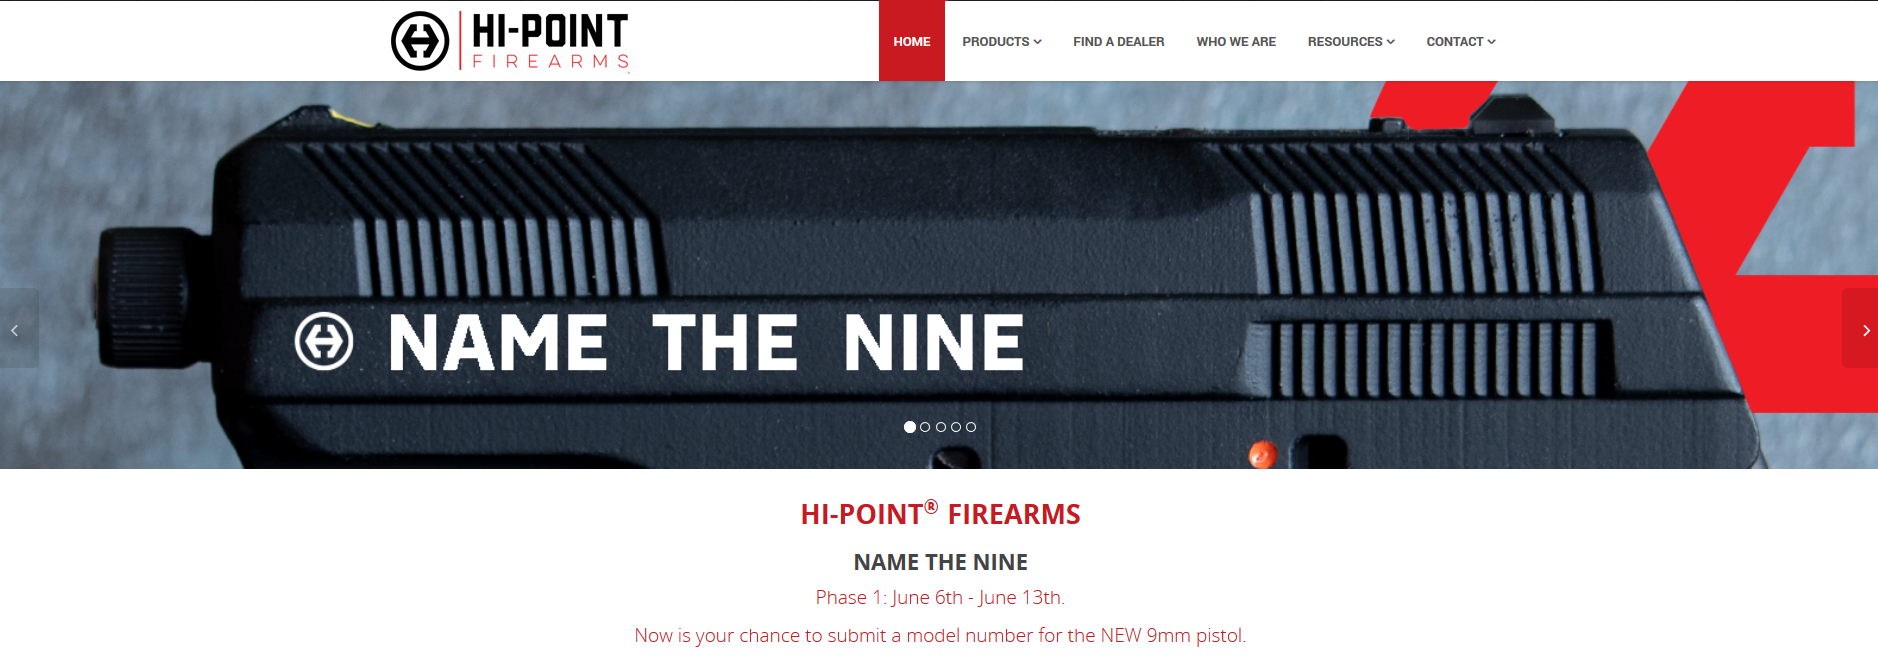 Hi-Point Firearms – 'Name The Nine' Contest « Tactical Fanboy